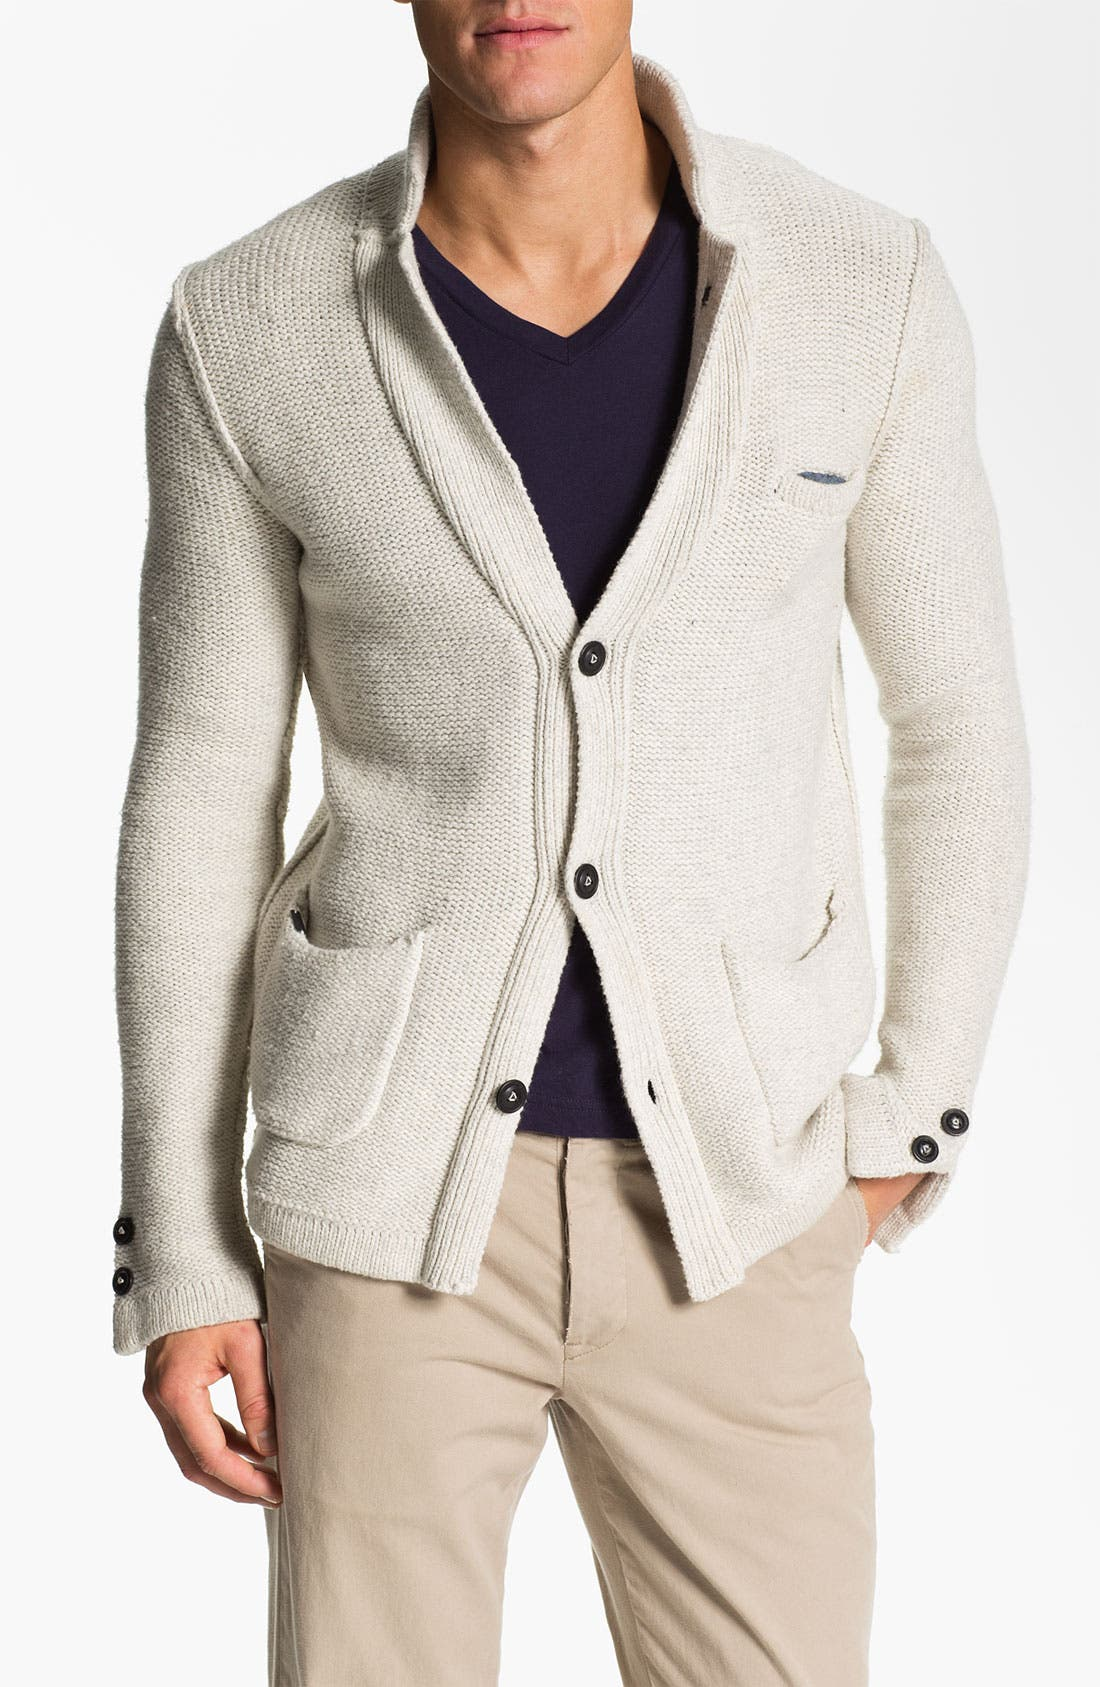 Main Image - J.C. Rags Reverse Knit Three Button Sweater Blazer